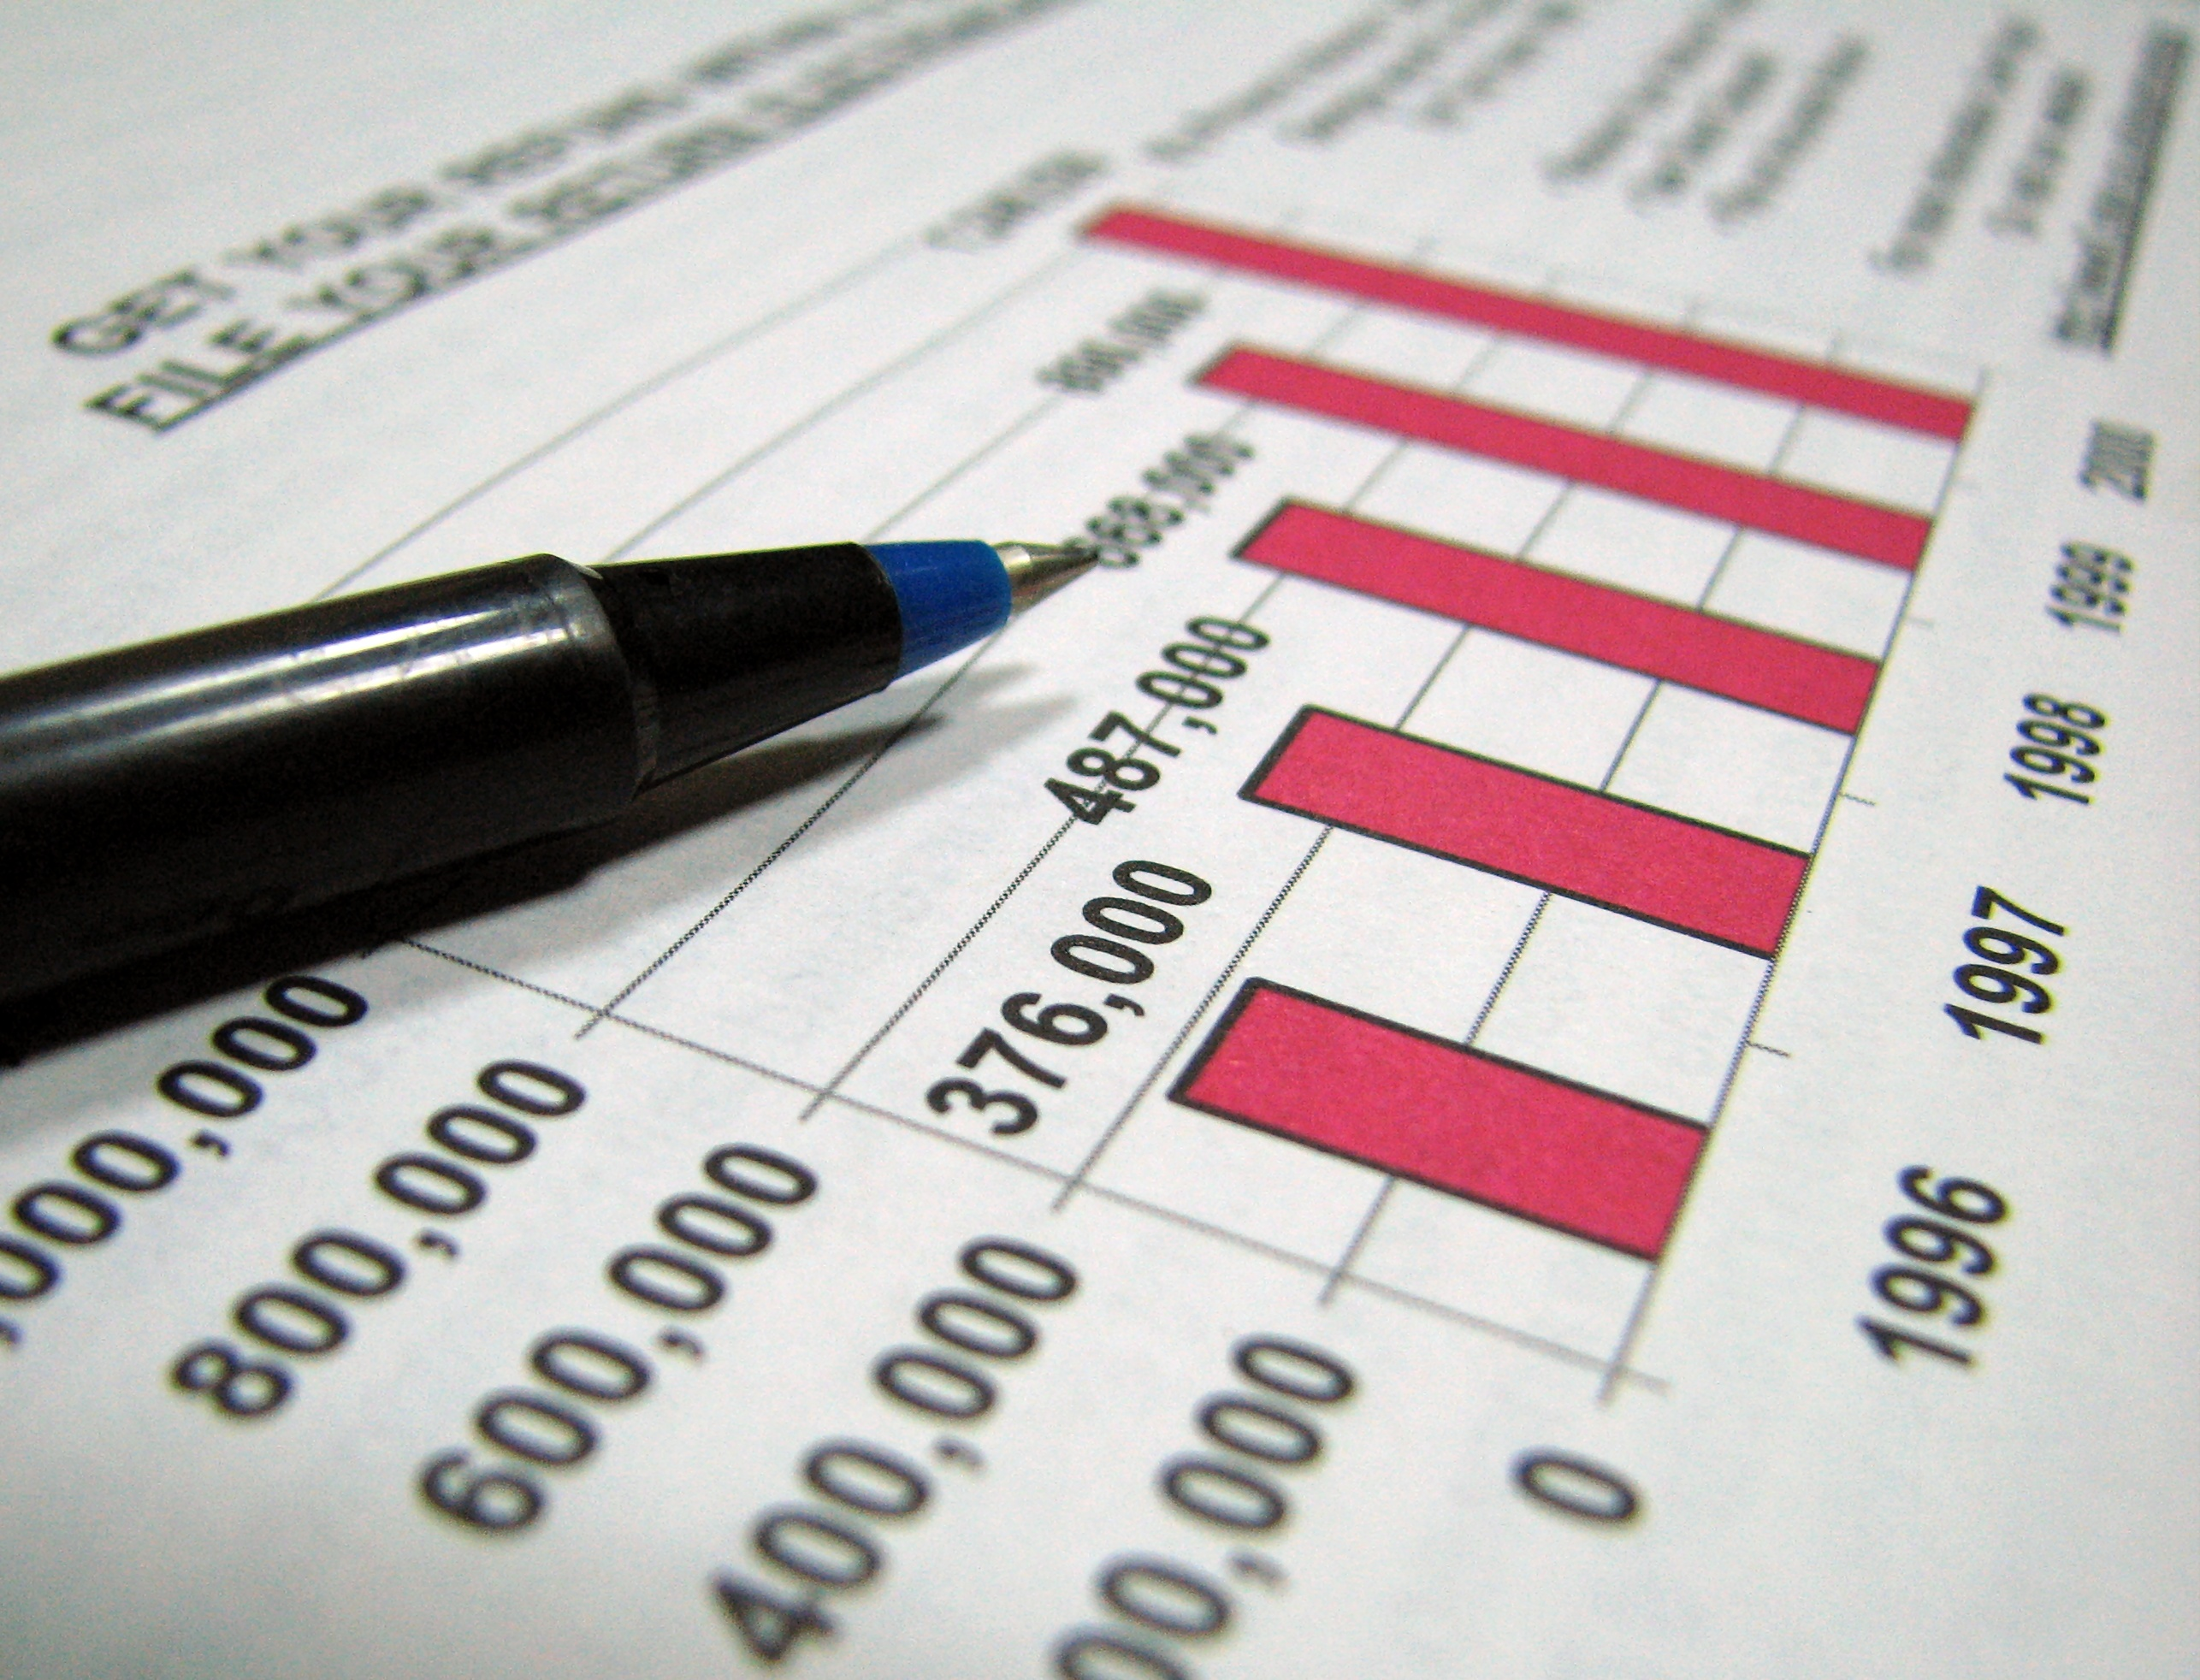 Closeup of tax graph and pen, Business, Graphs, Office, Pens, HQ Photo